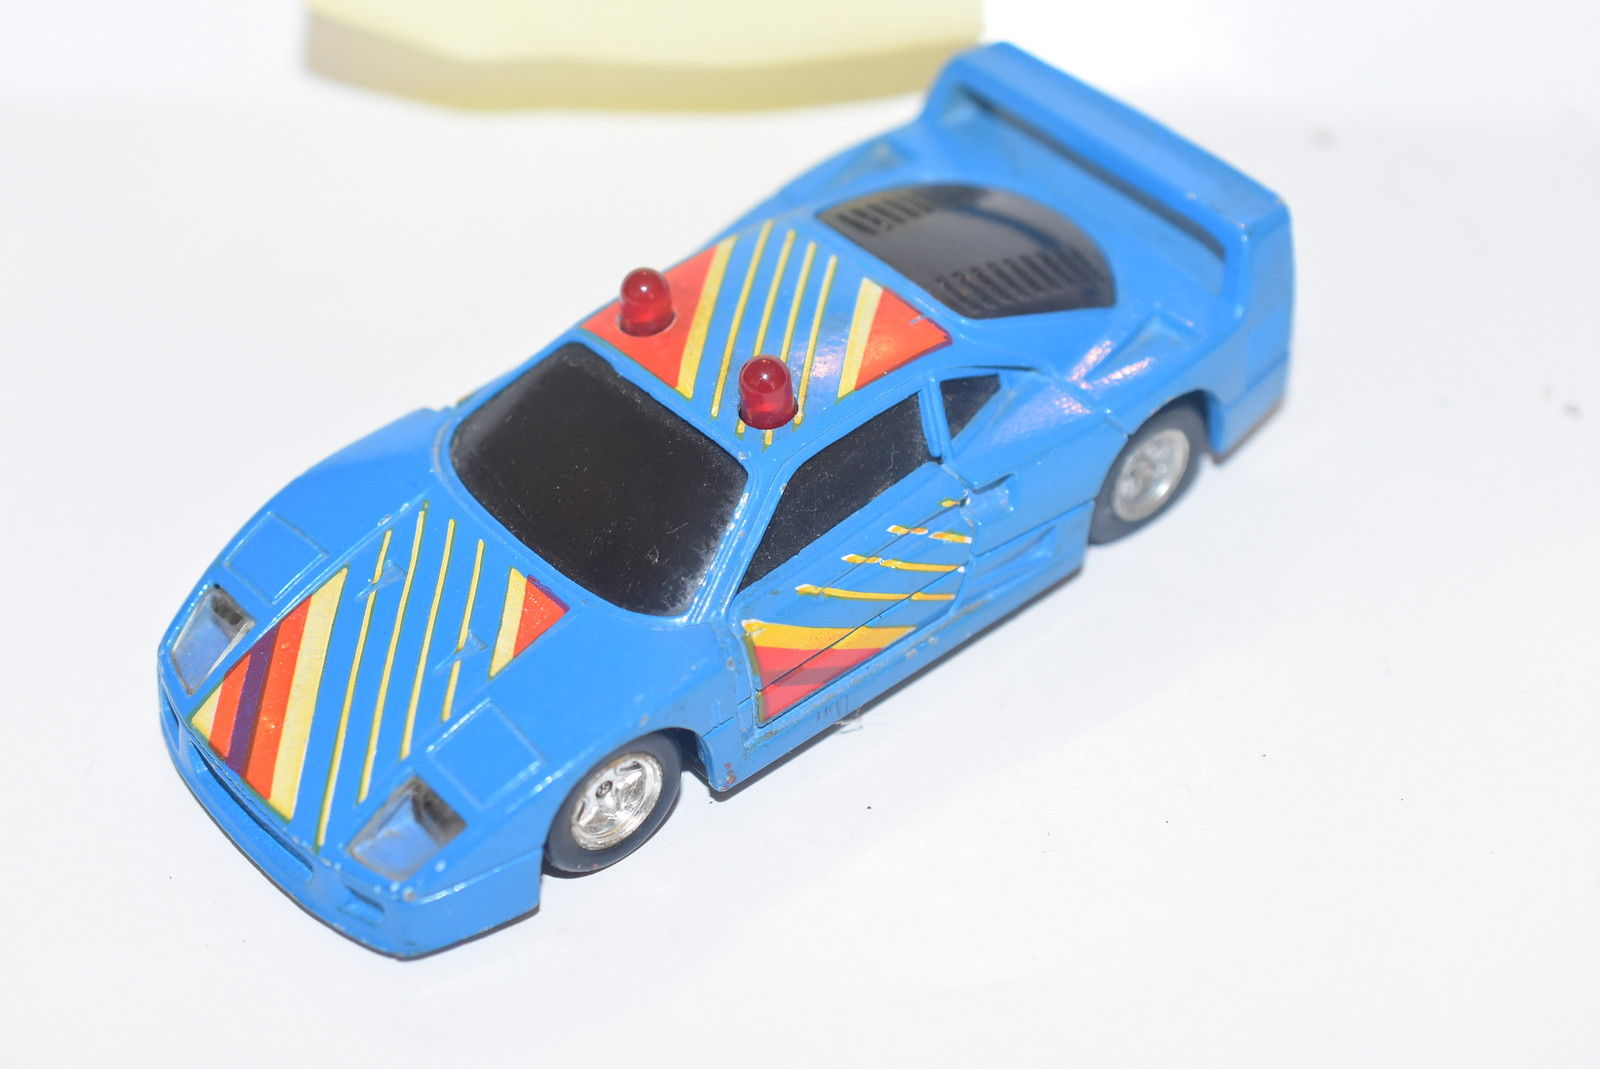 MC TOY FERRARI F 40 SCALE 1/39 MADE IN MACAU - LOOSE BLUE